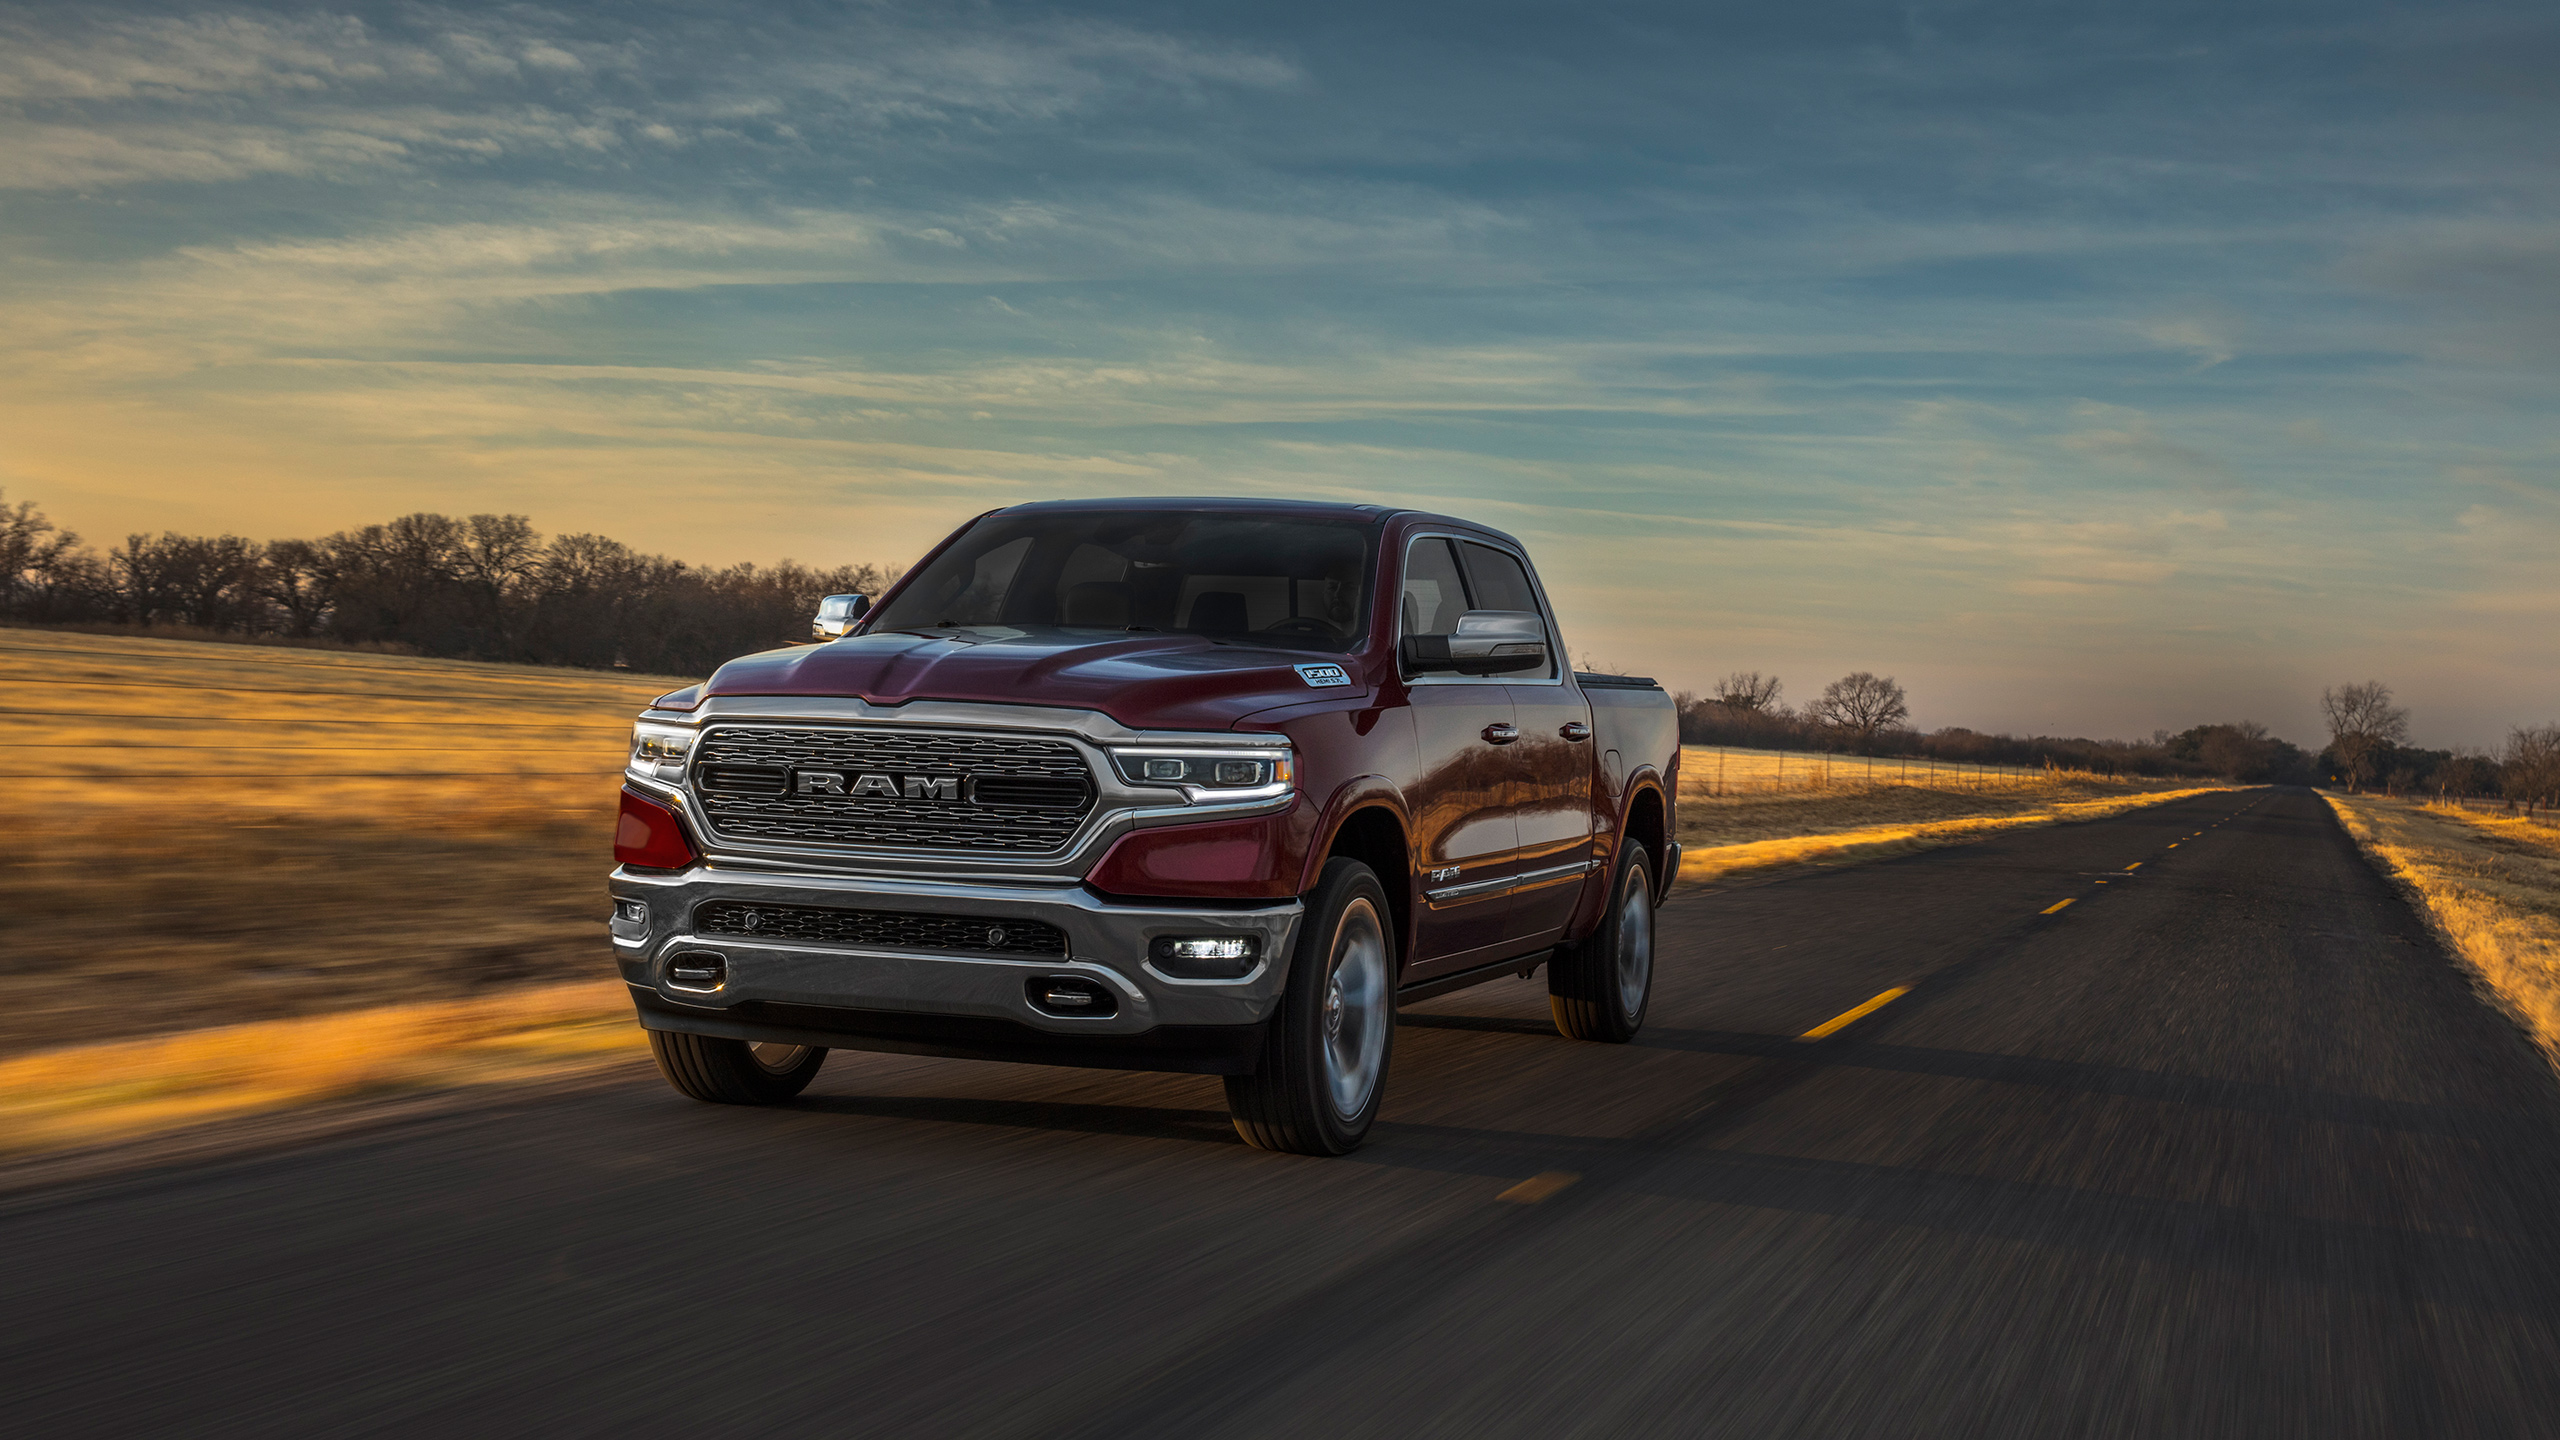 2019 Ram 1500 Limited Crew Cab Wallpaper Hd Car Wallpapers Id 9408